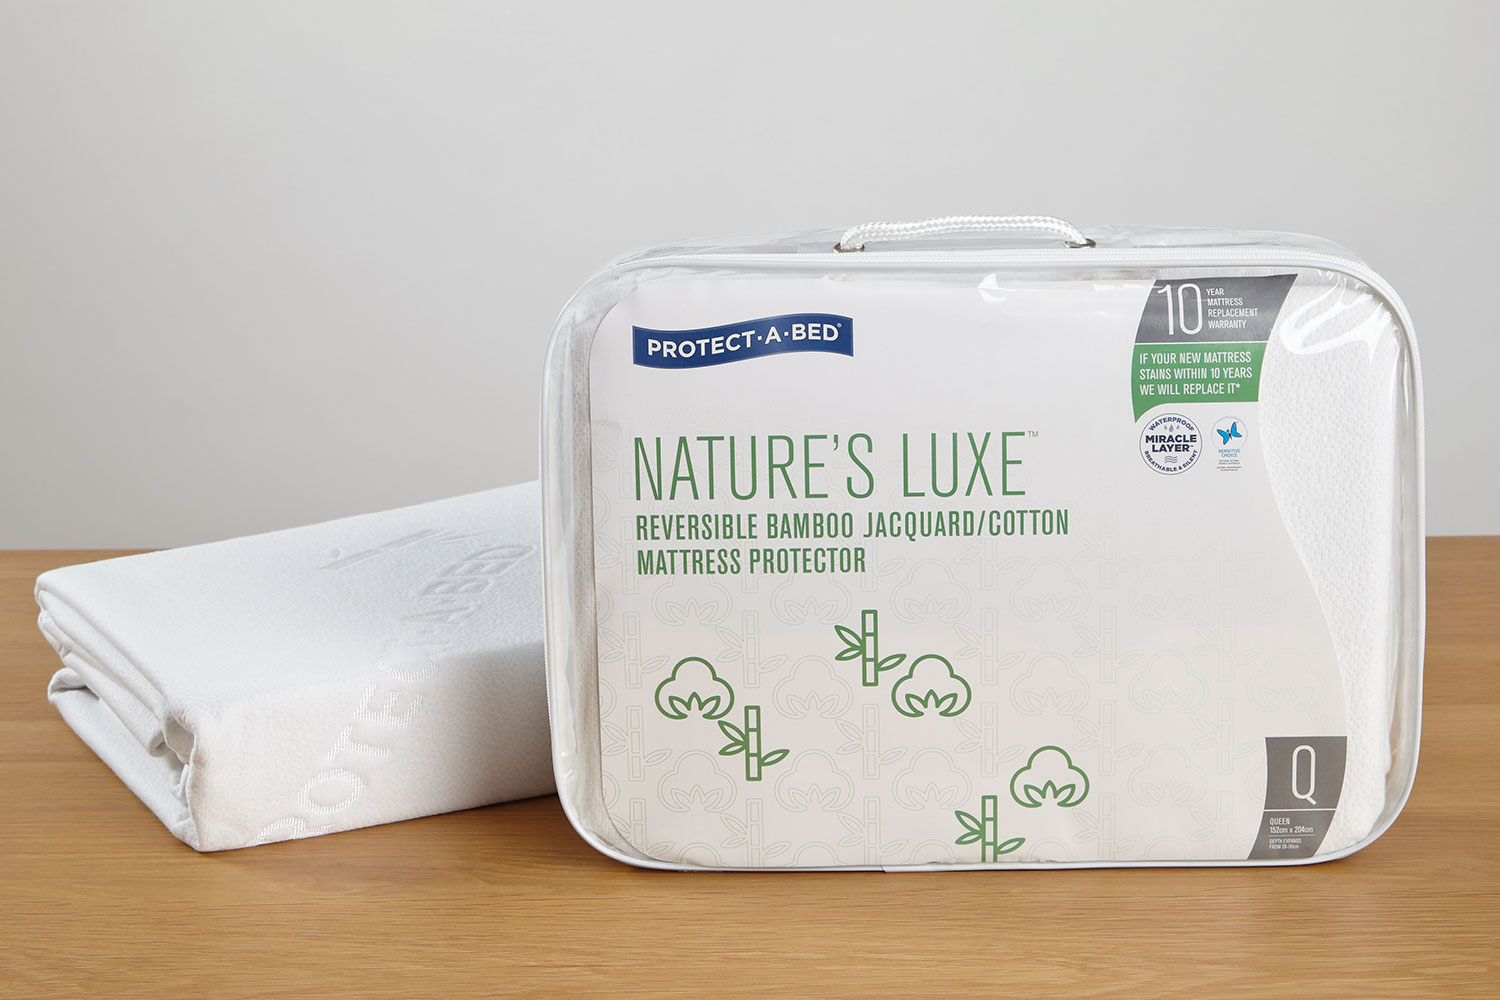 Natures Luxe Mattress Protector by Protect-A-Bed at Harvey Norman New Zealand